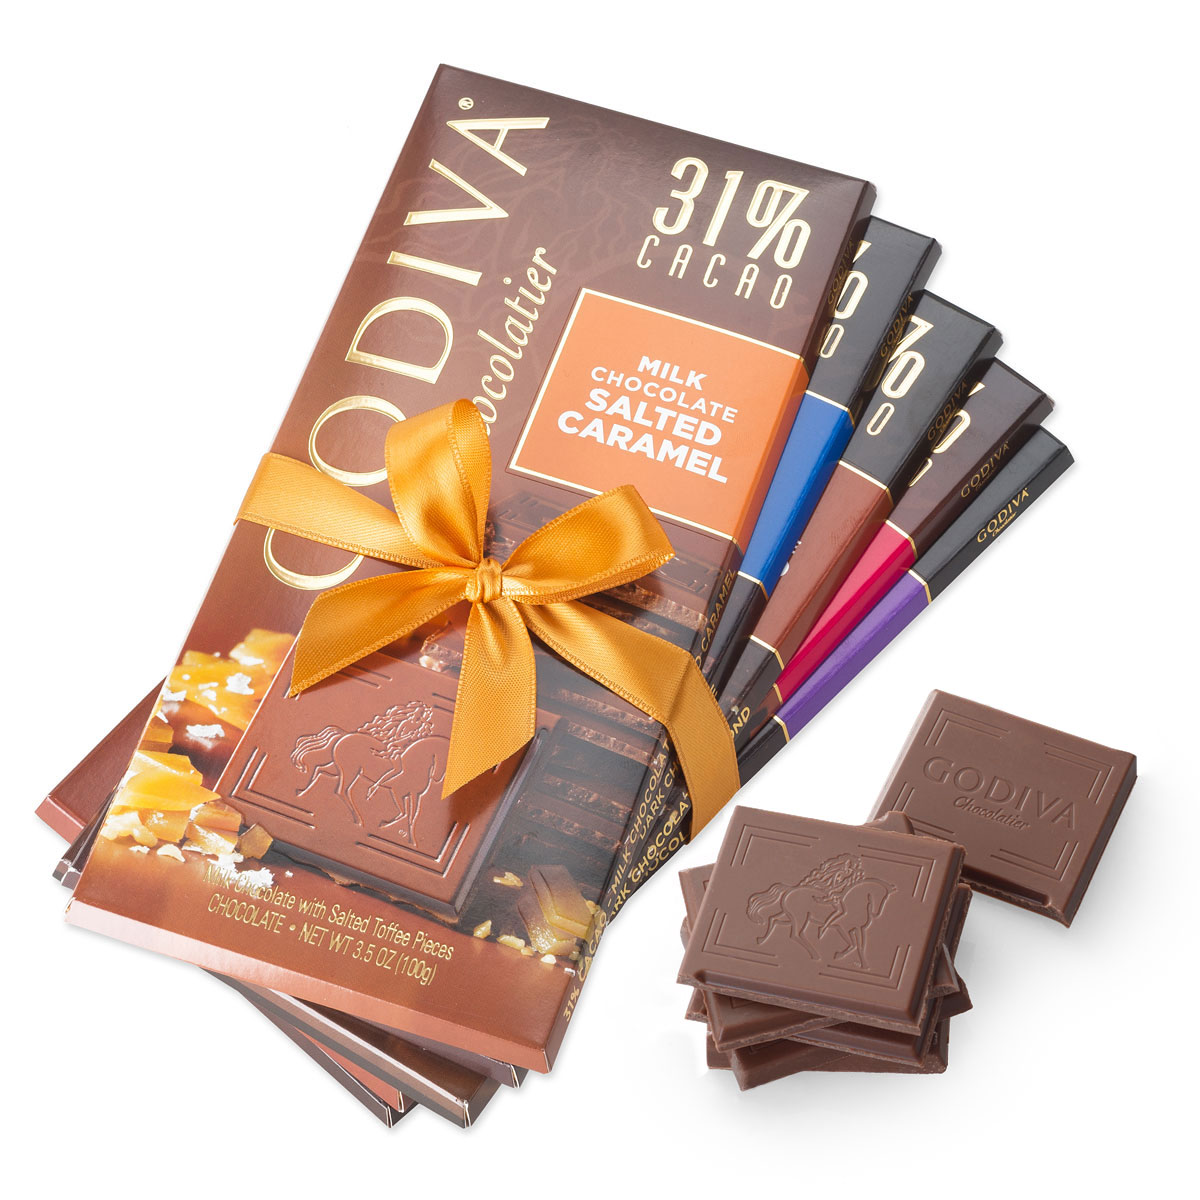 marketing and godiva Godiva introduced godiva gems at mass market with lower price to reach high level of target market it is perfect for the customer to gain high quality chocolates at affordable prices.